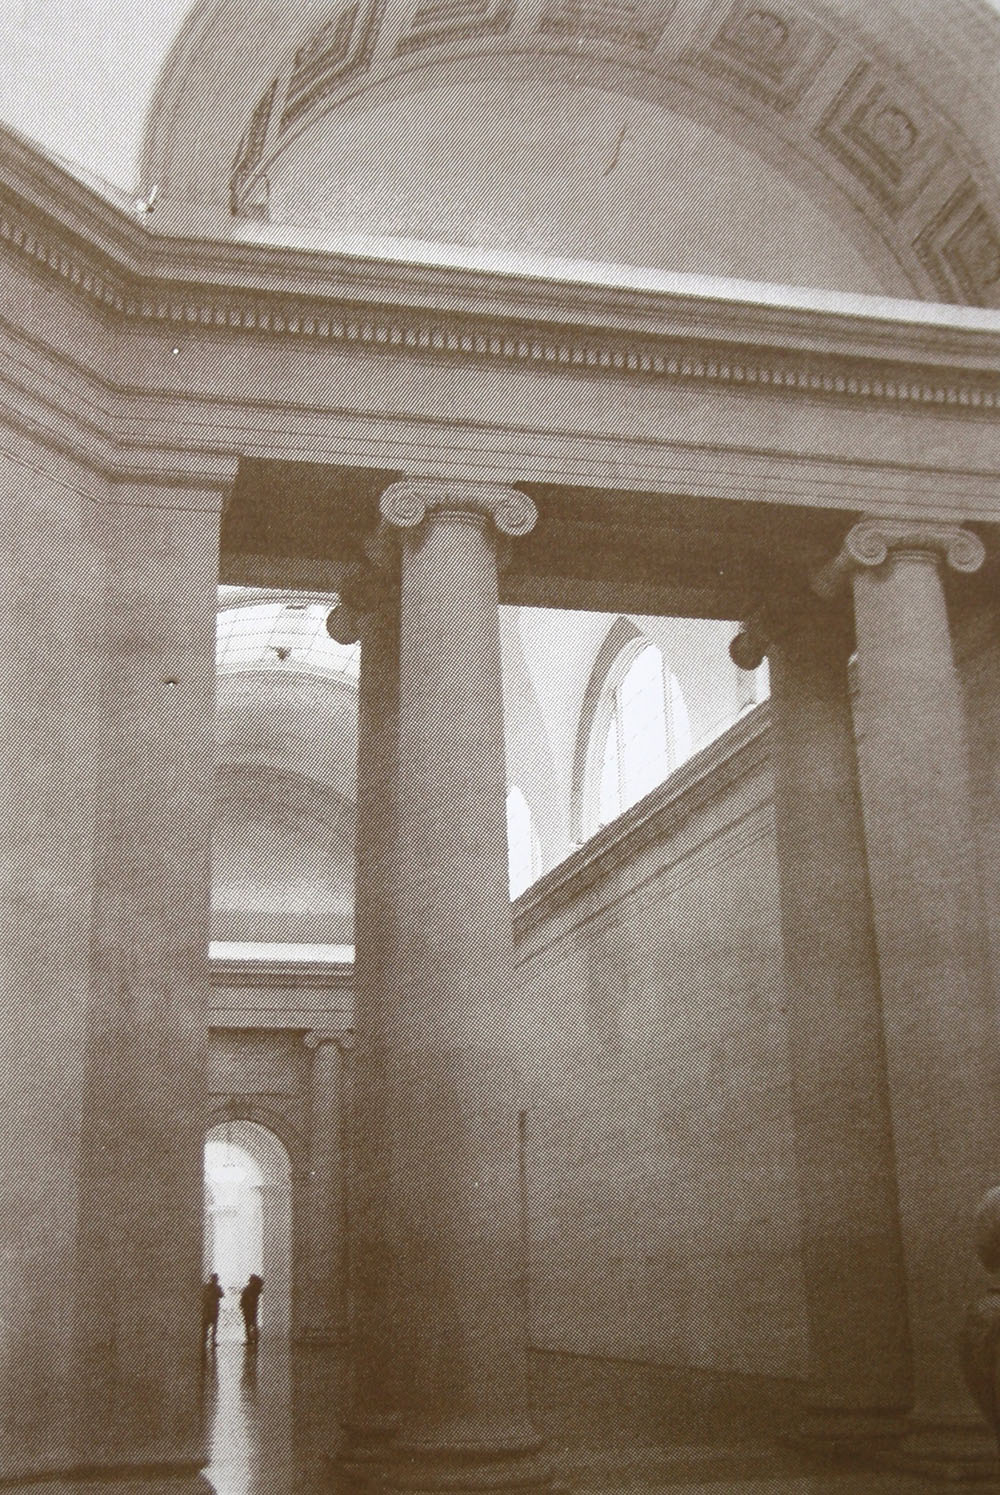 Tate Britain Hidden Meaning #1